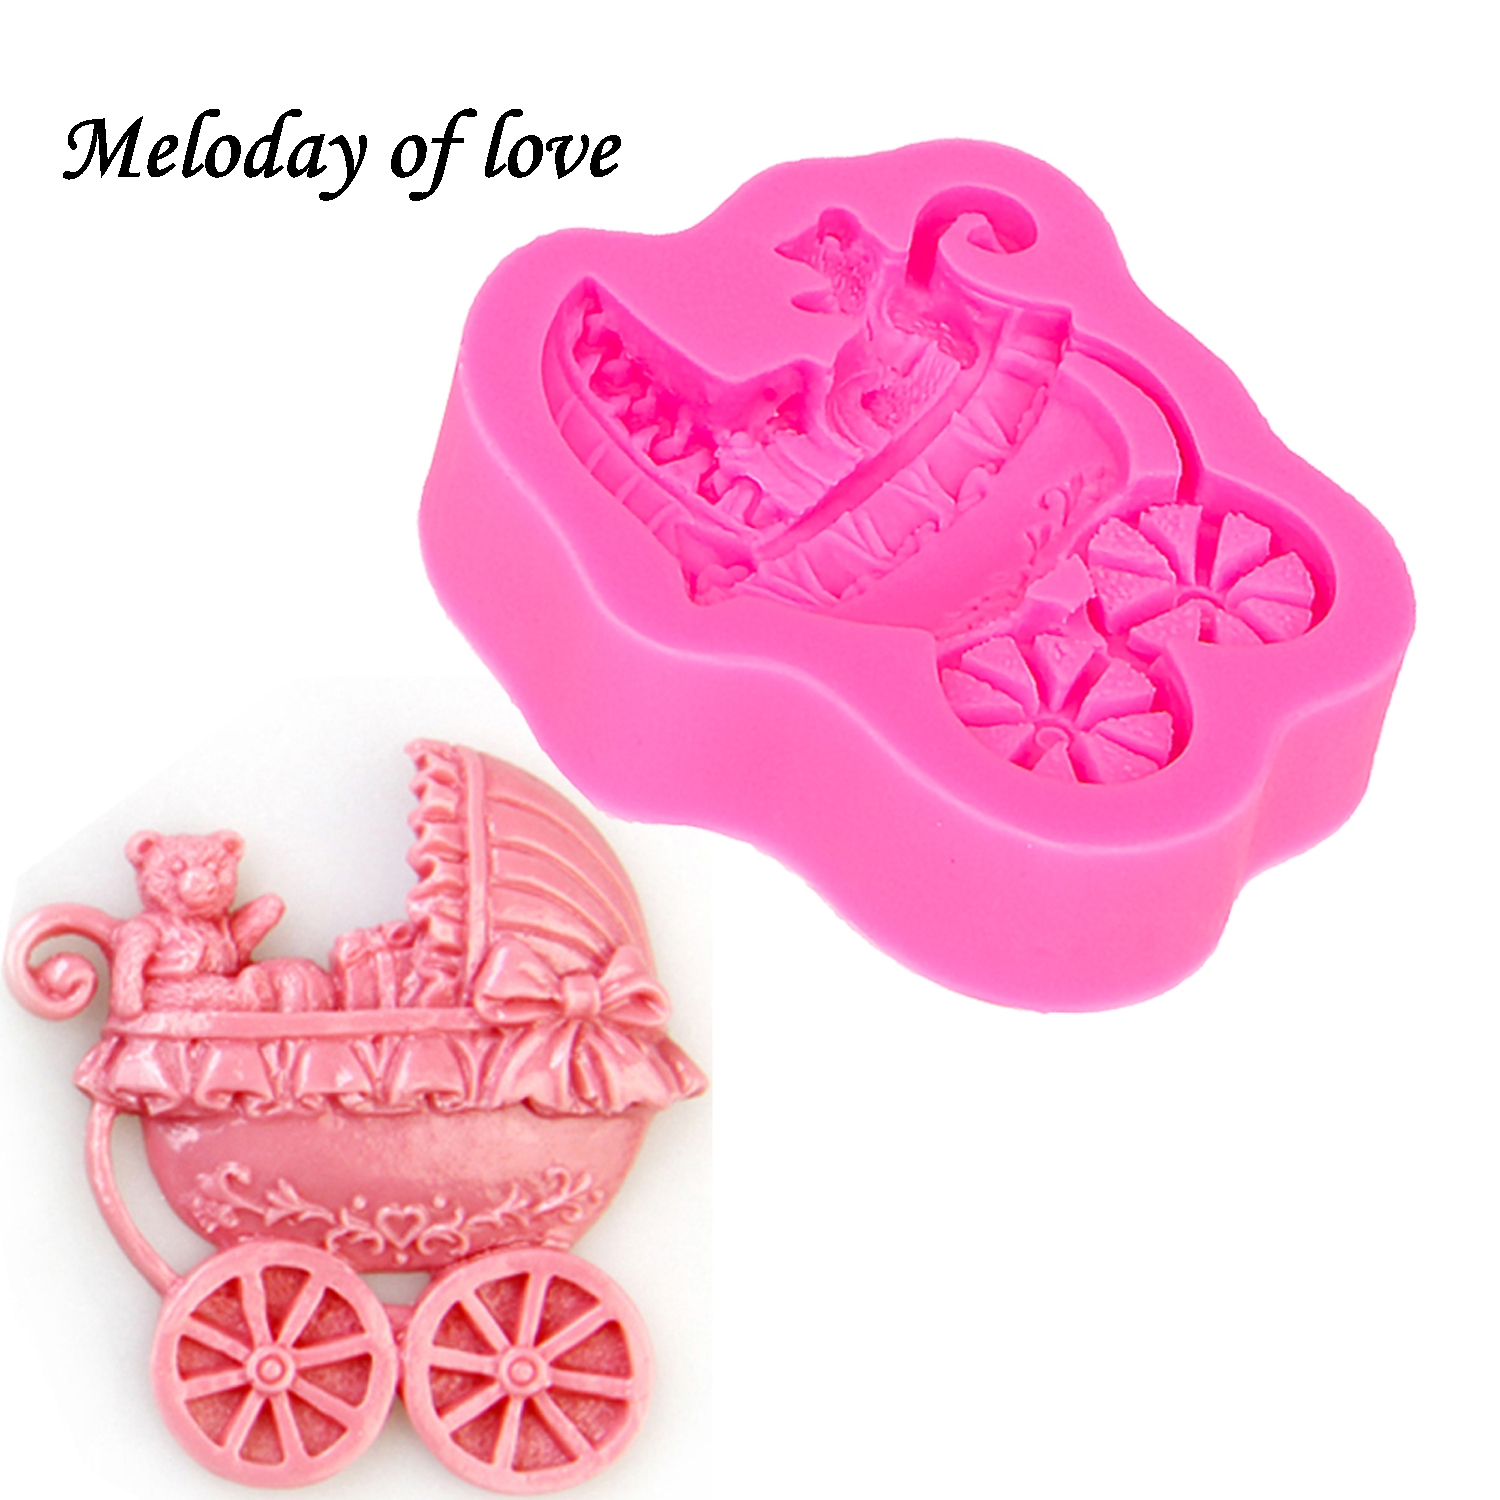 Bear Baby Carriage Car Bows Soap Mould  DIY Fondant Baking Cake Decorating Tools Silicone Mold T0088